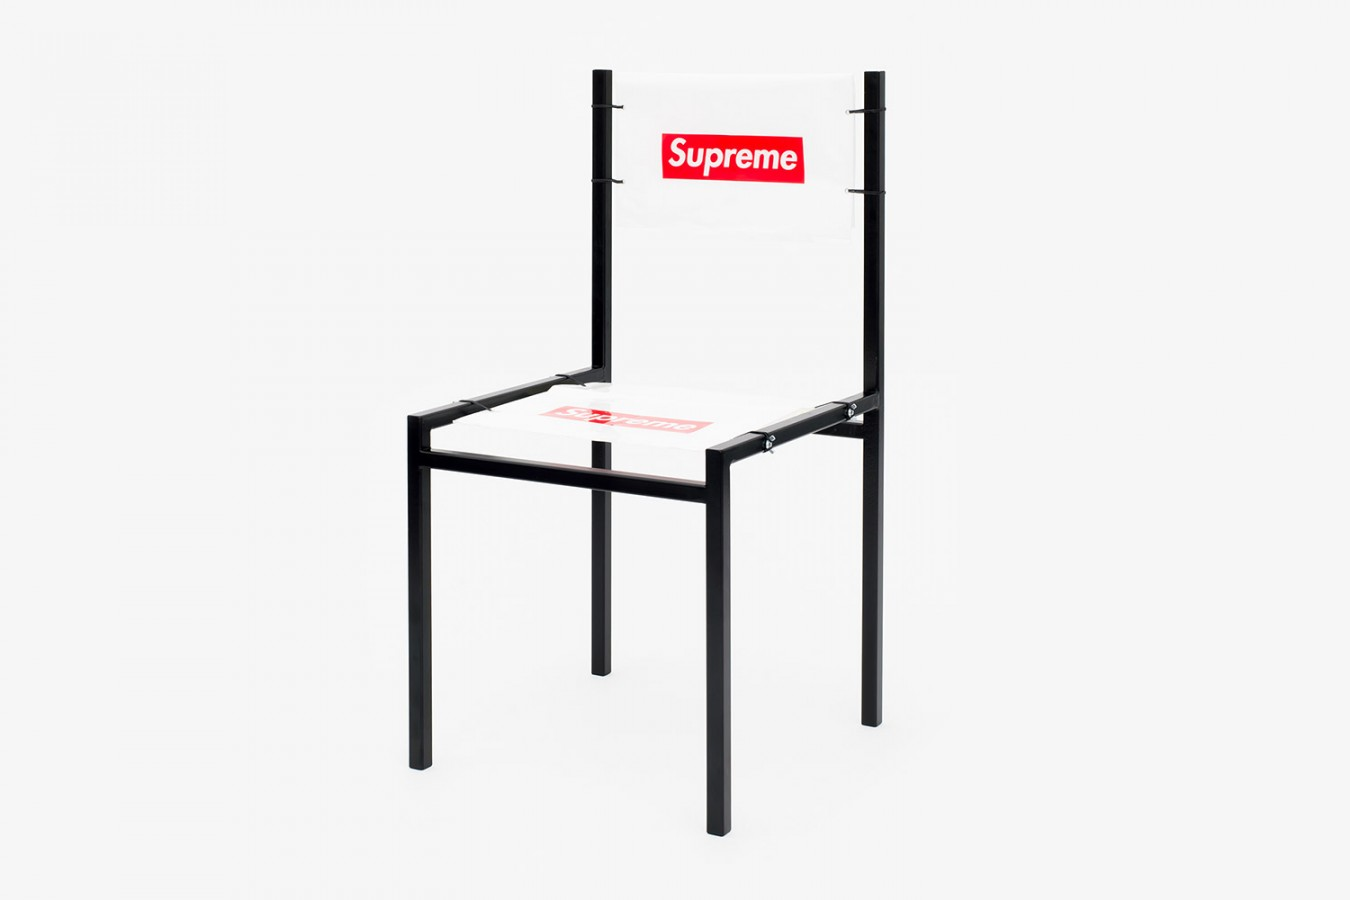 supreme-shopping-bag-chair-01-1350x900